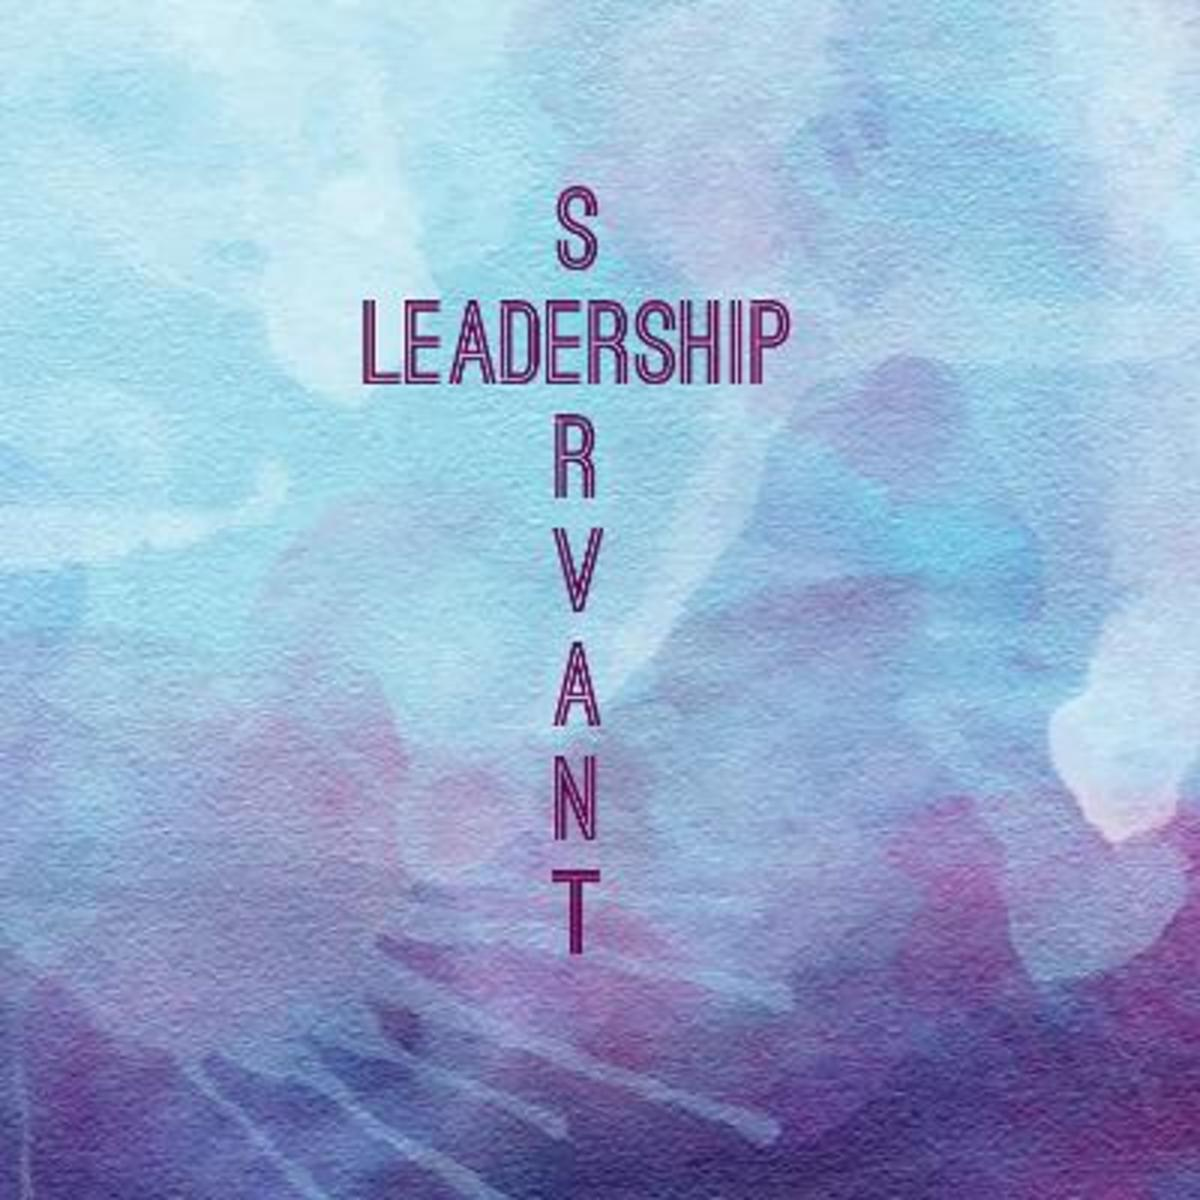 being-a-servant-is-the-first-step-to-being-an-effective-leader